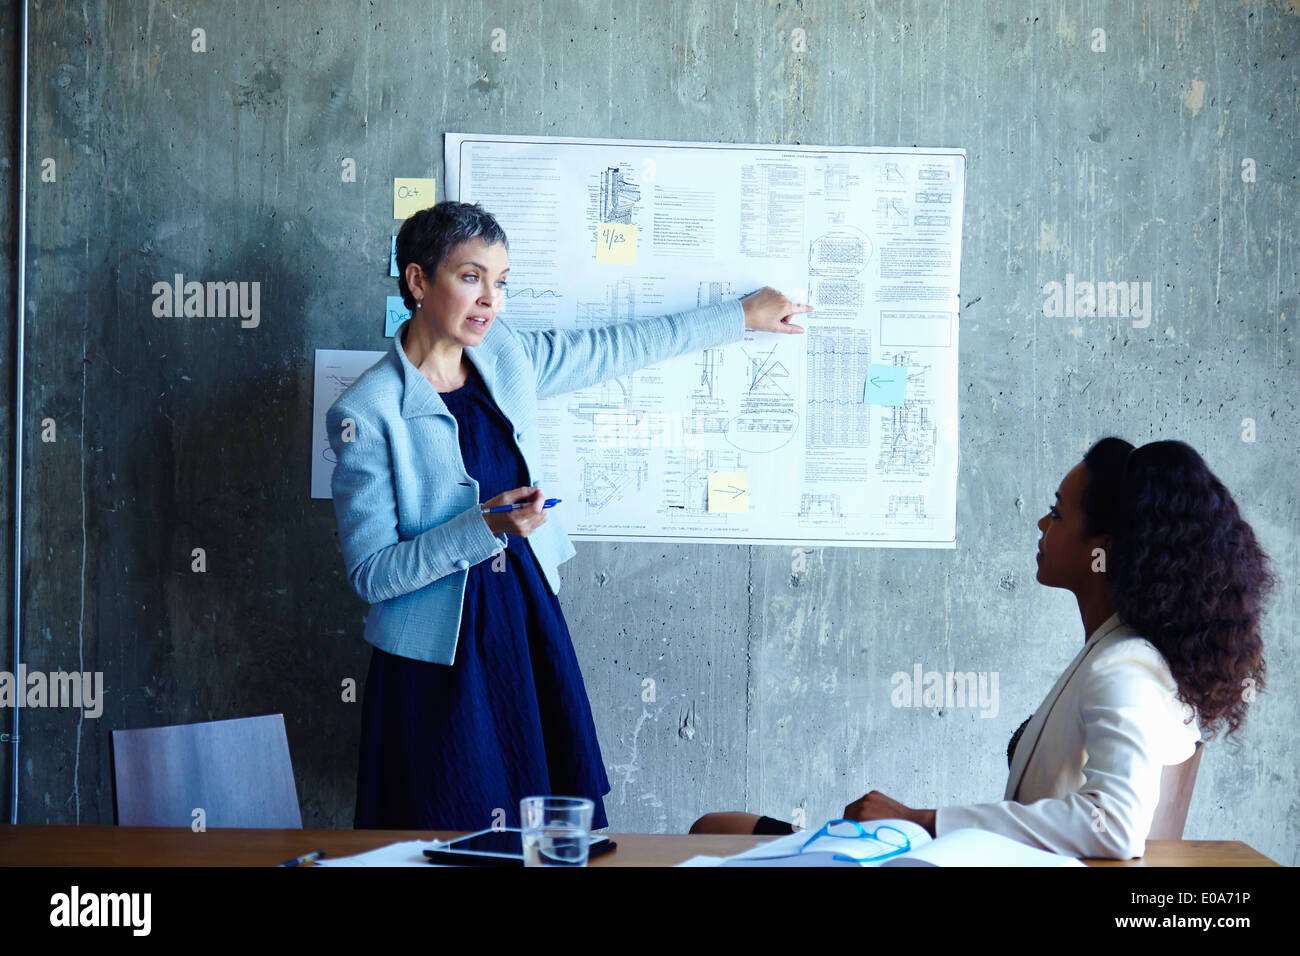 Mature businesswomen presenting ideas at meeting - Stock Image